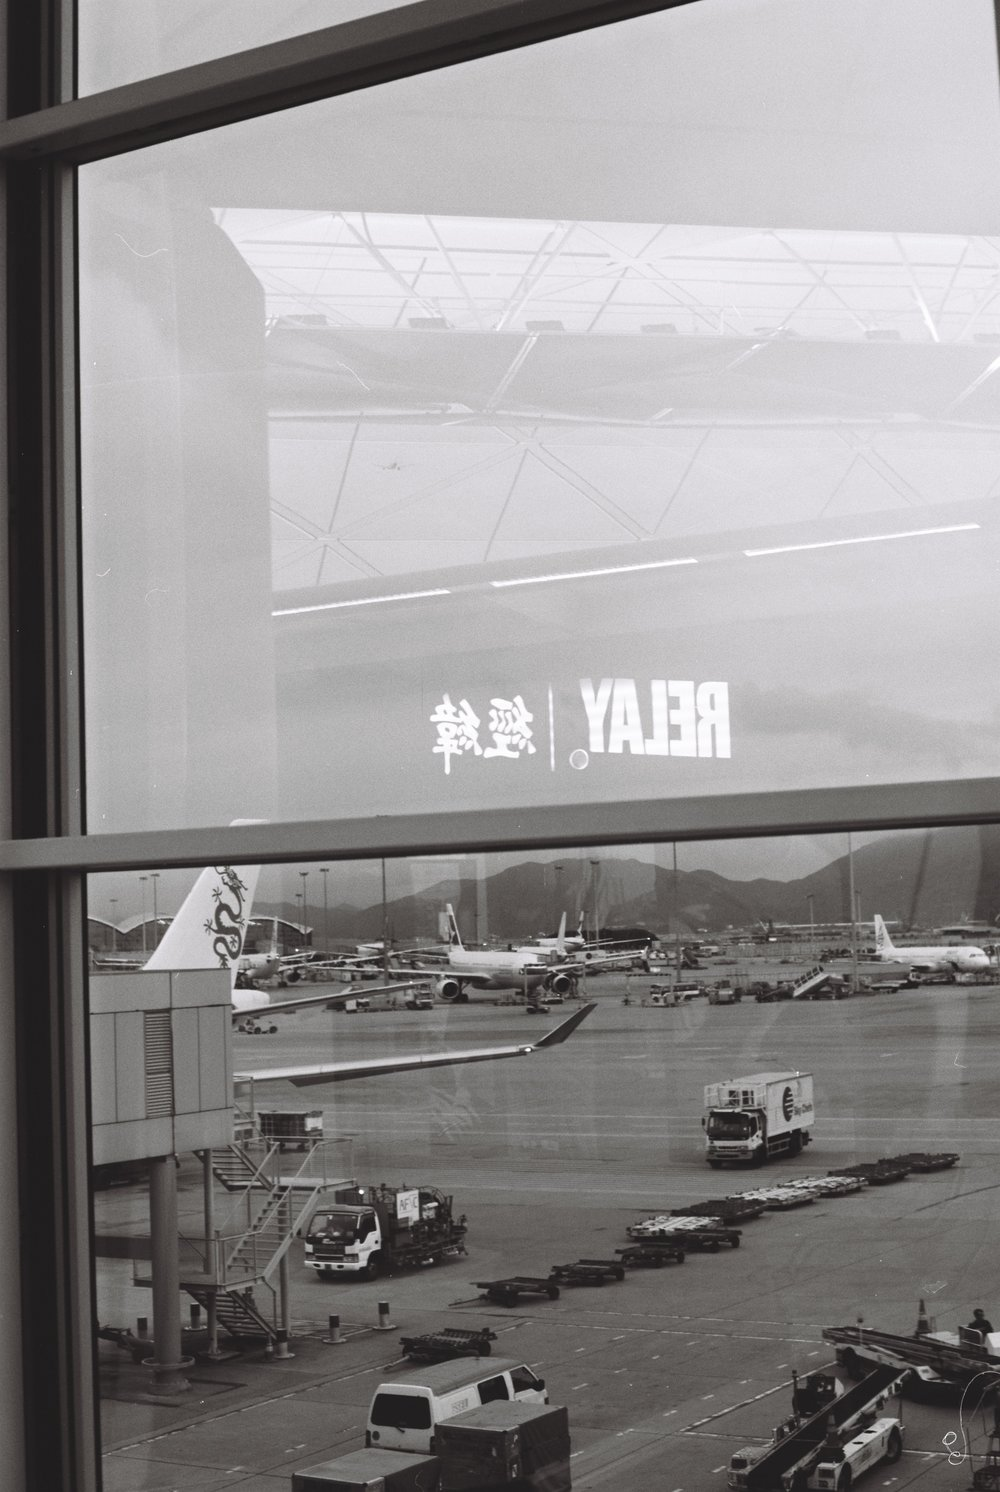 Hong Kong Airport en route to Brisbane. September 2015.